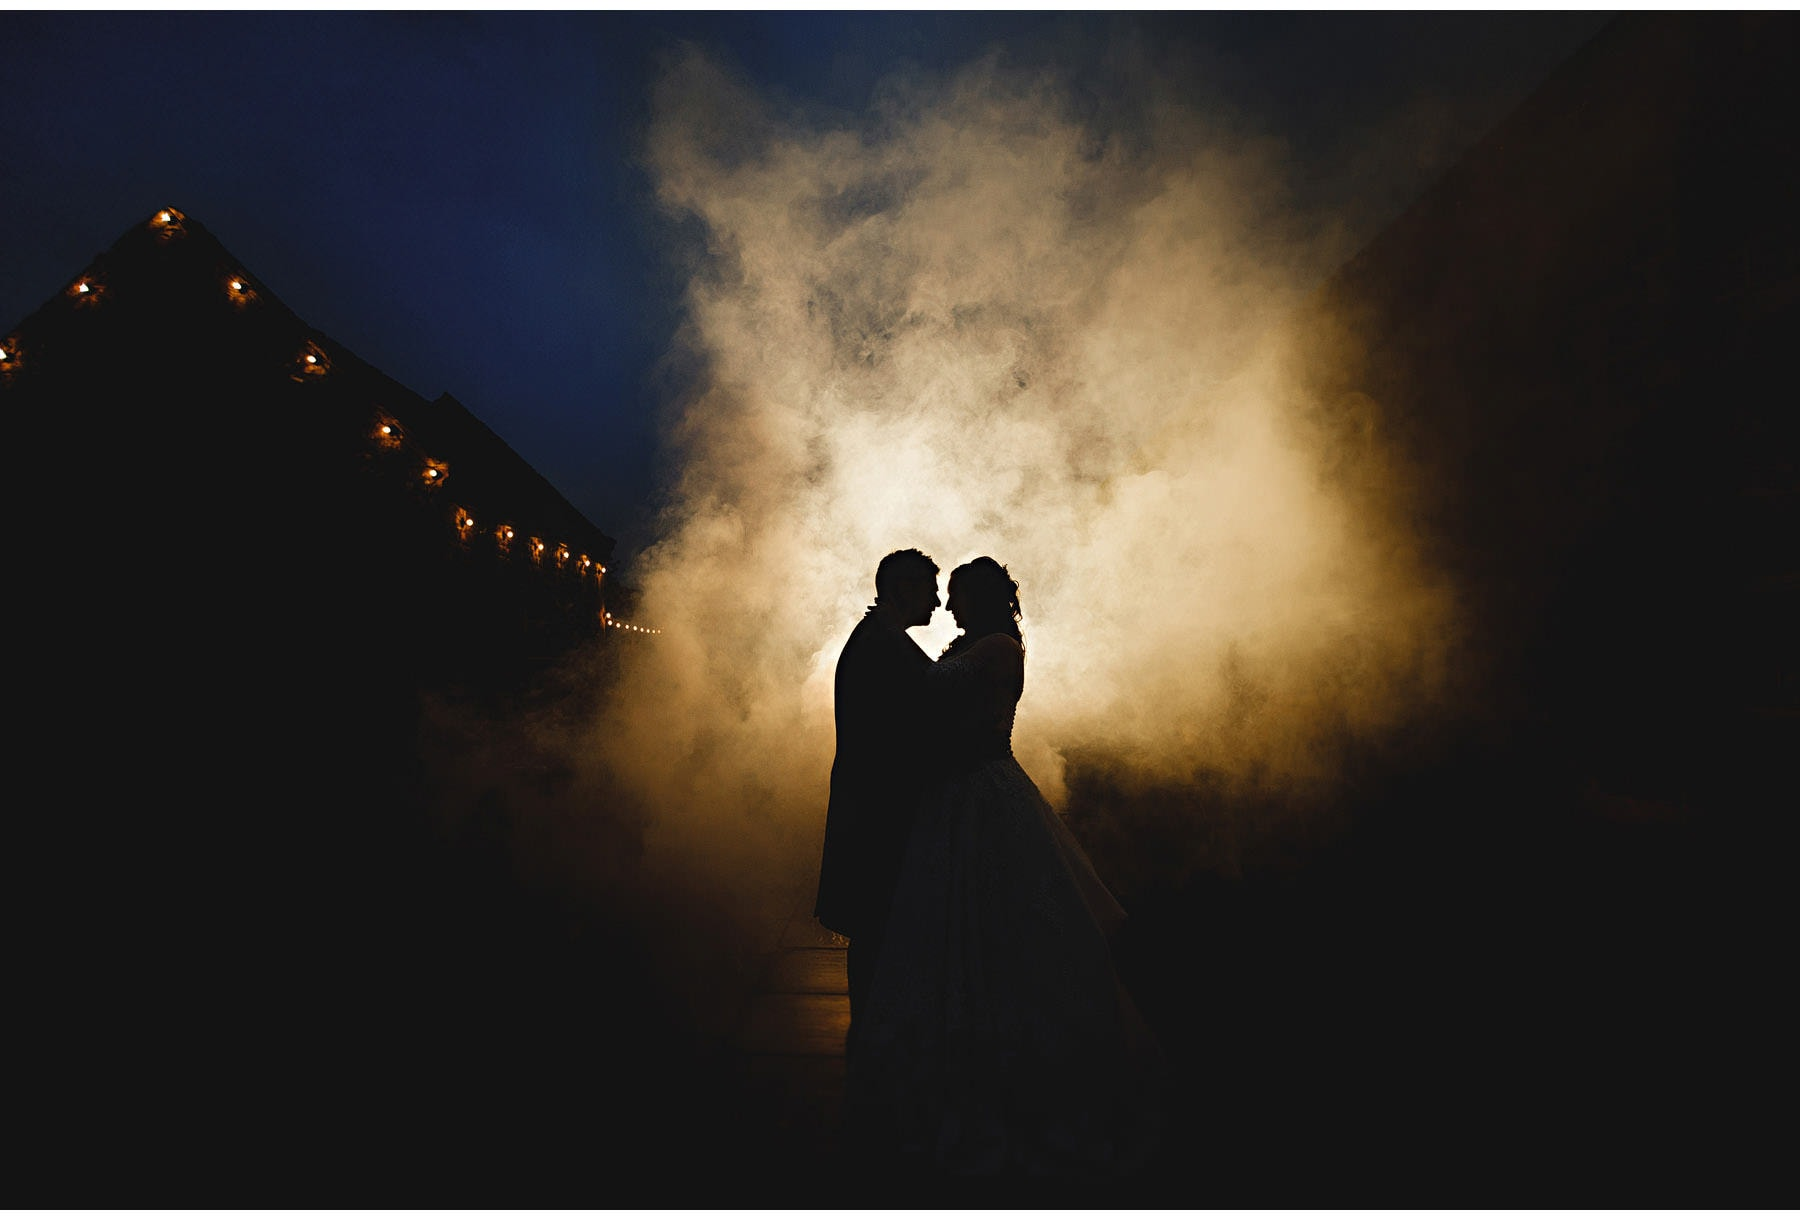 The bride & groom in the mist at night